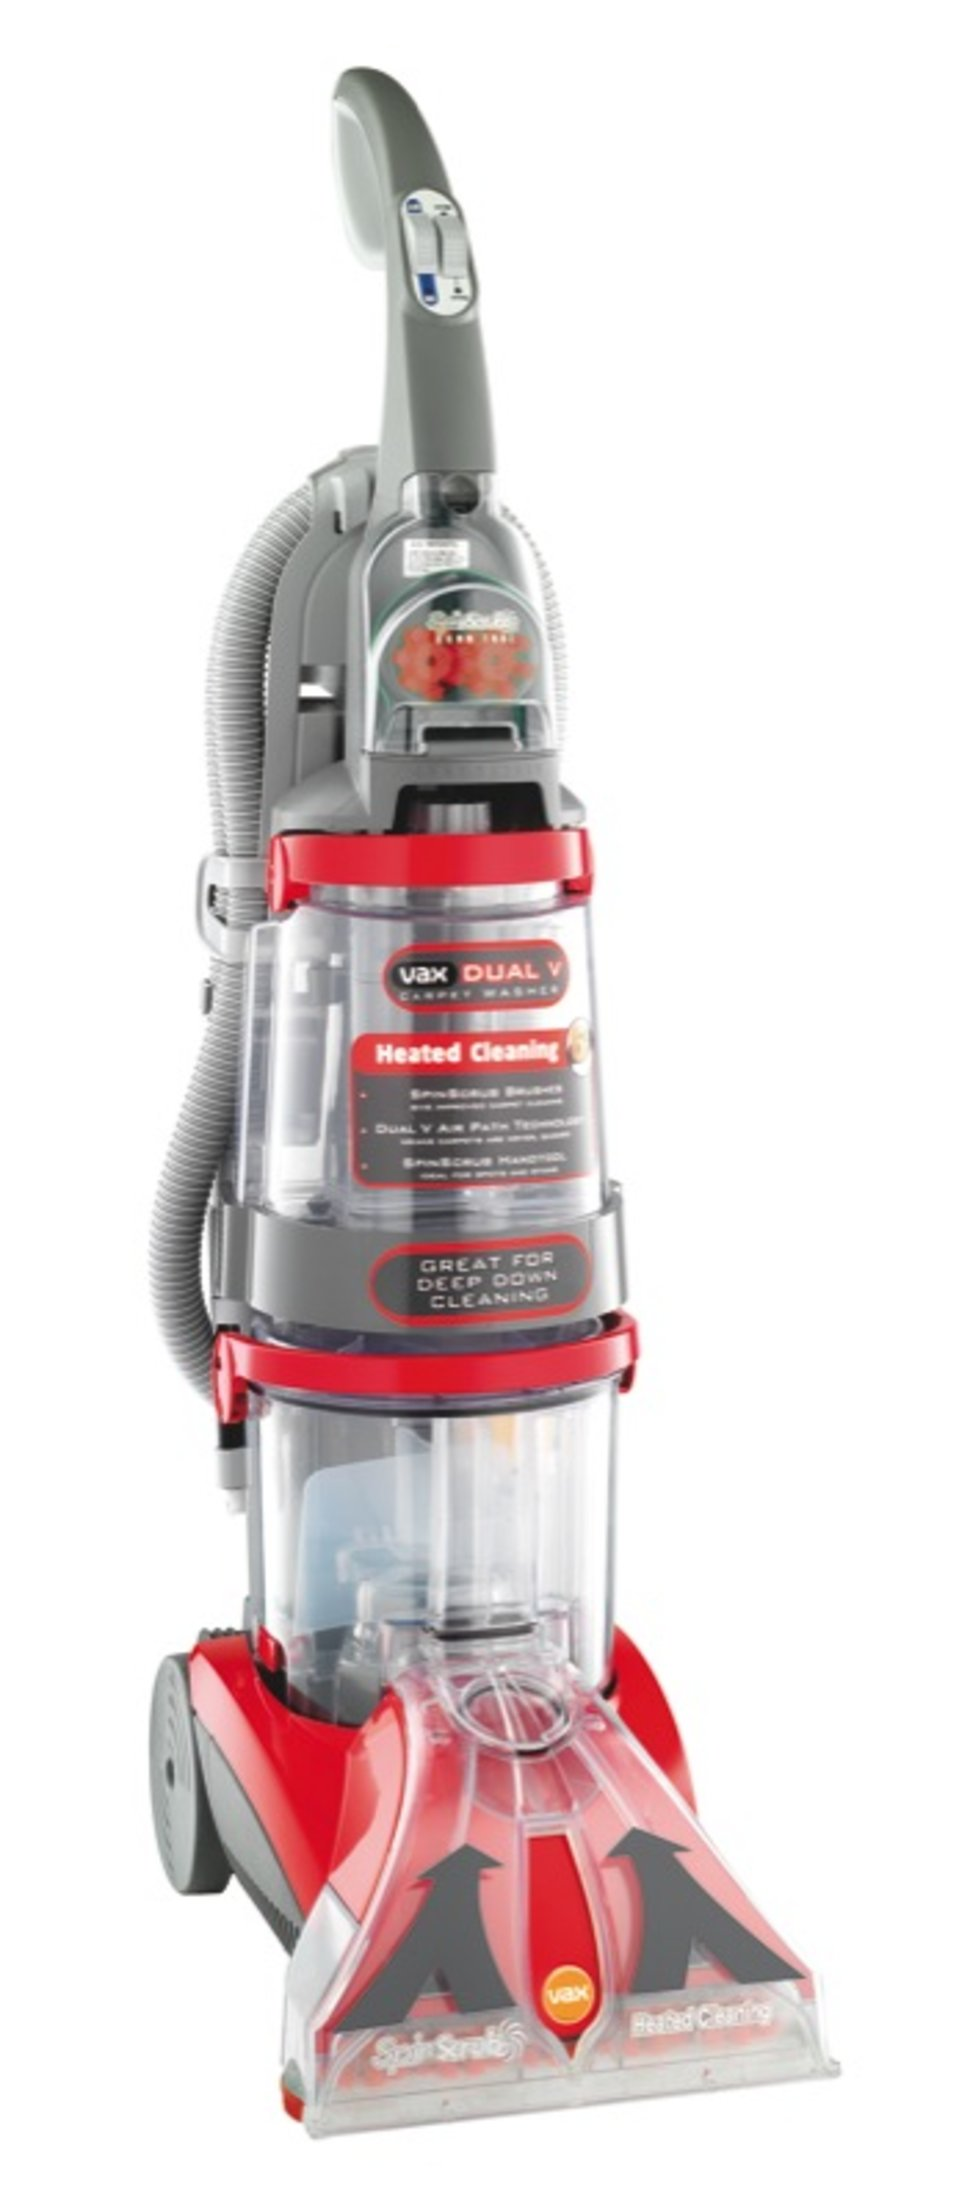 Vax Dual V 124a Carpet Cleaner